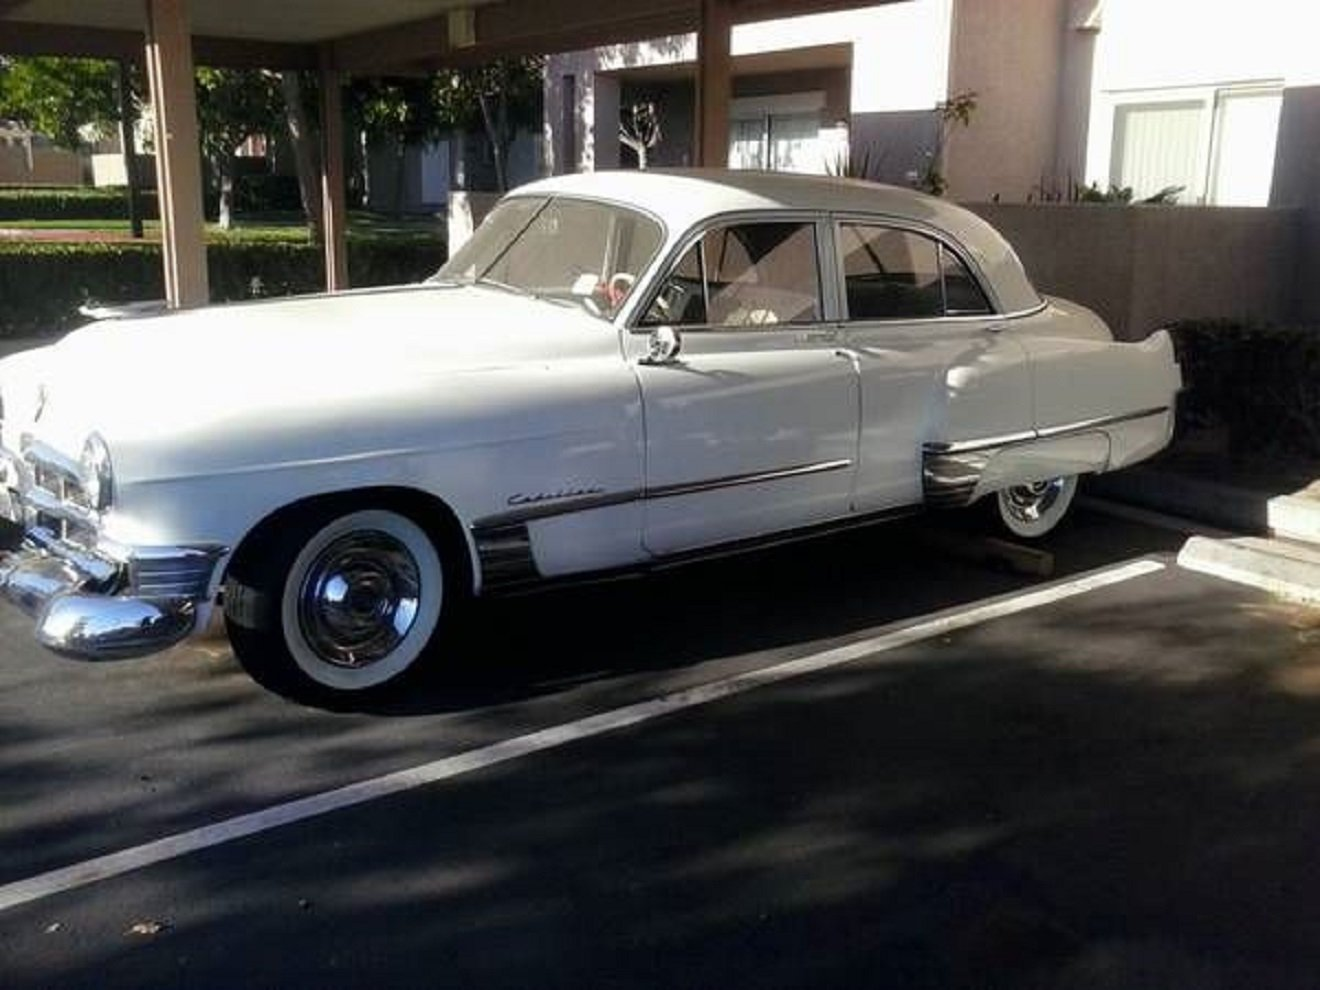 1949 Cadillac Fleetwood 4DR Sedan .. White For Sale (picture 1 of 6)